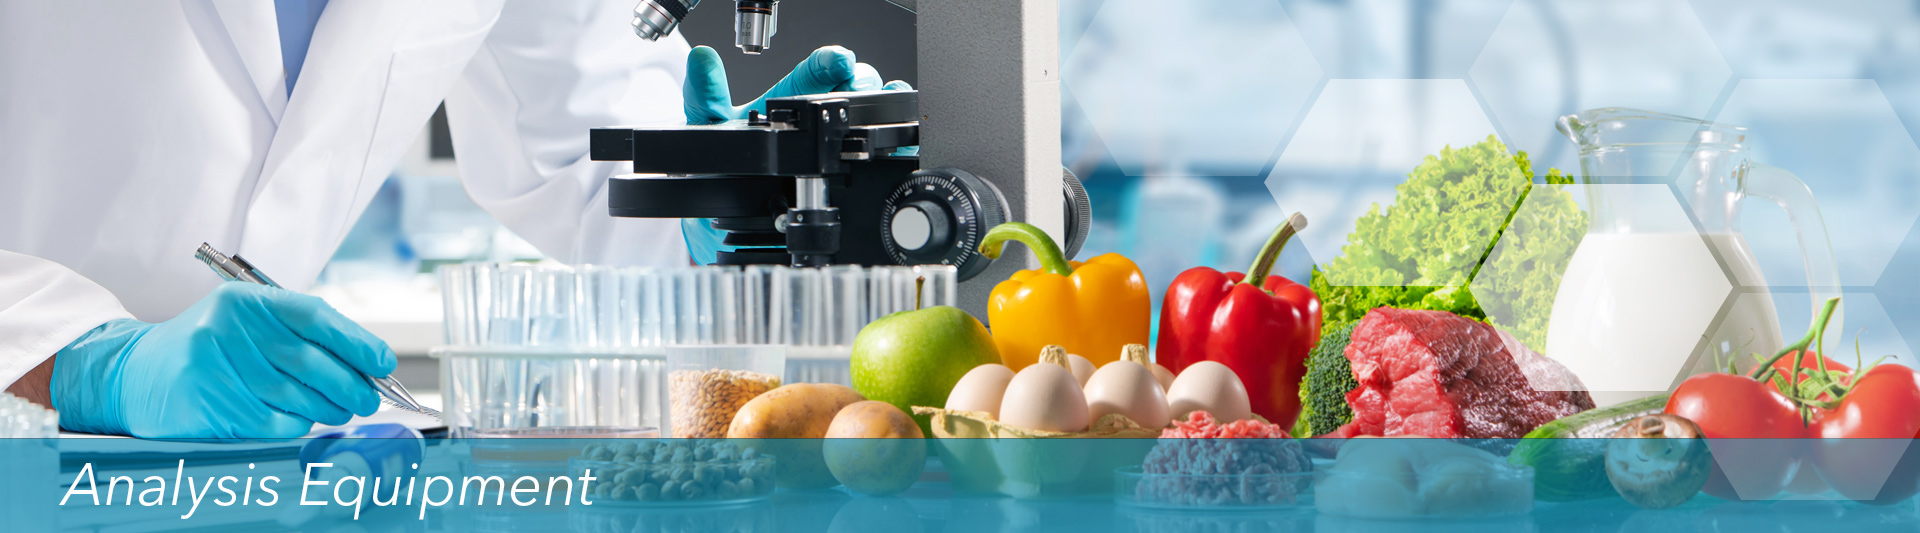 Food and Beverage Analysis Equipment